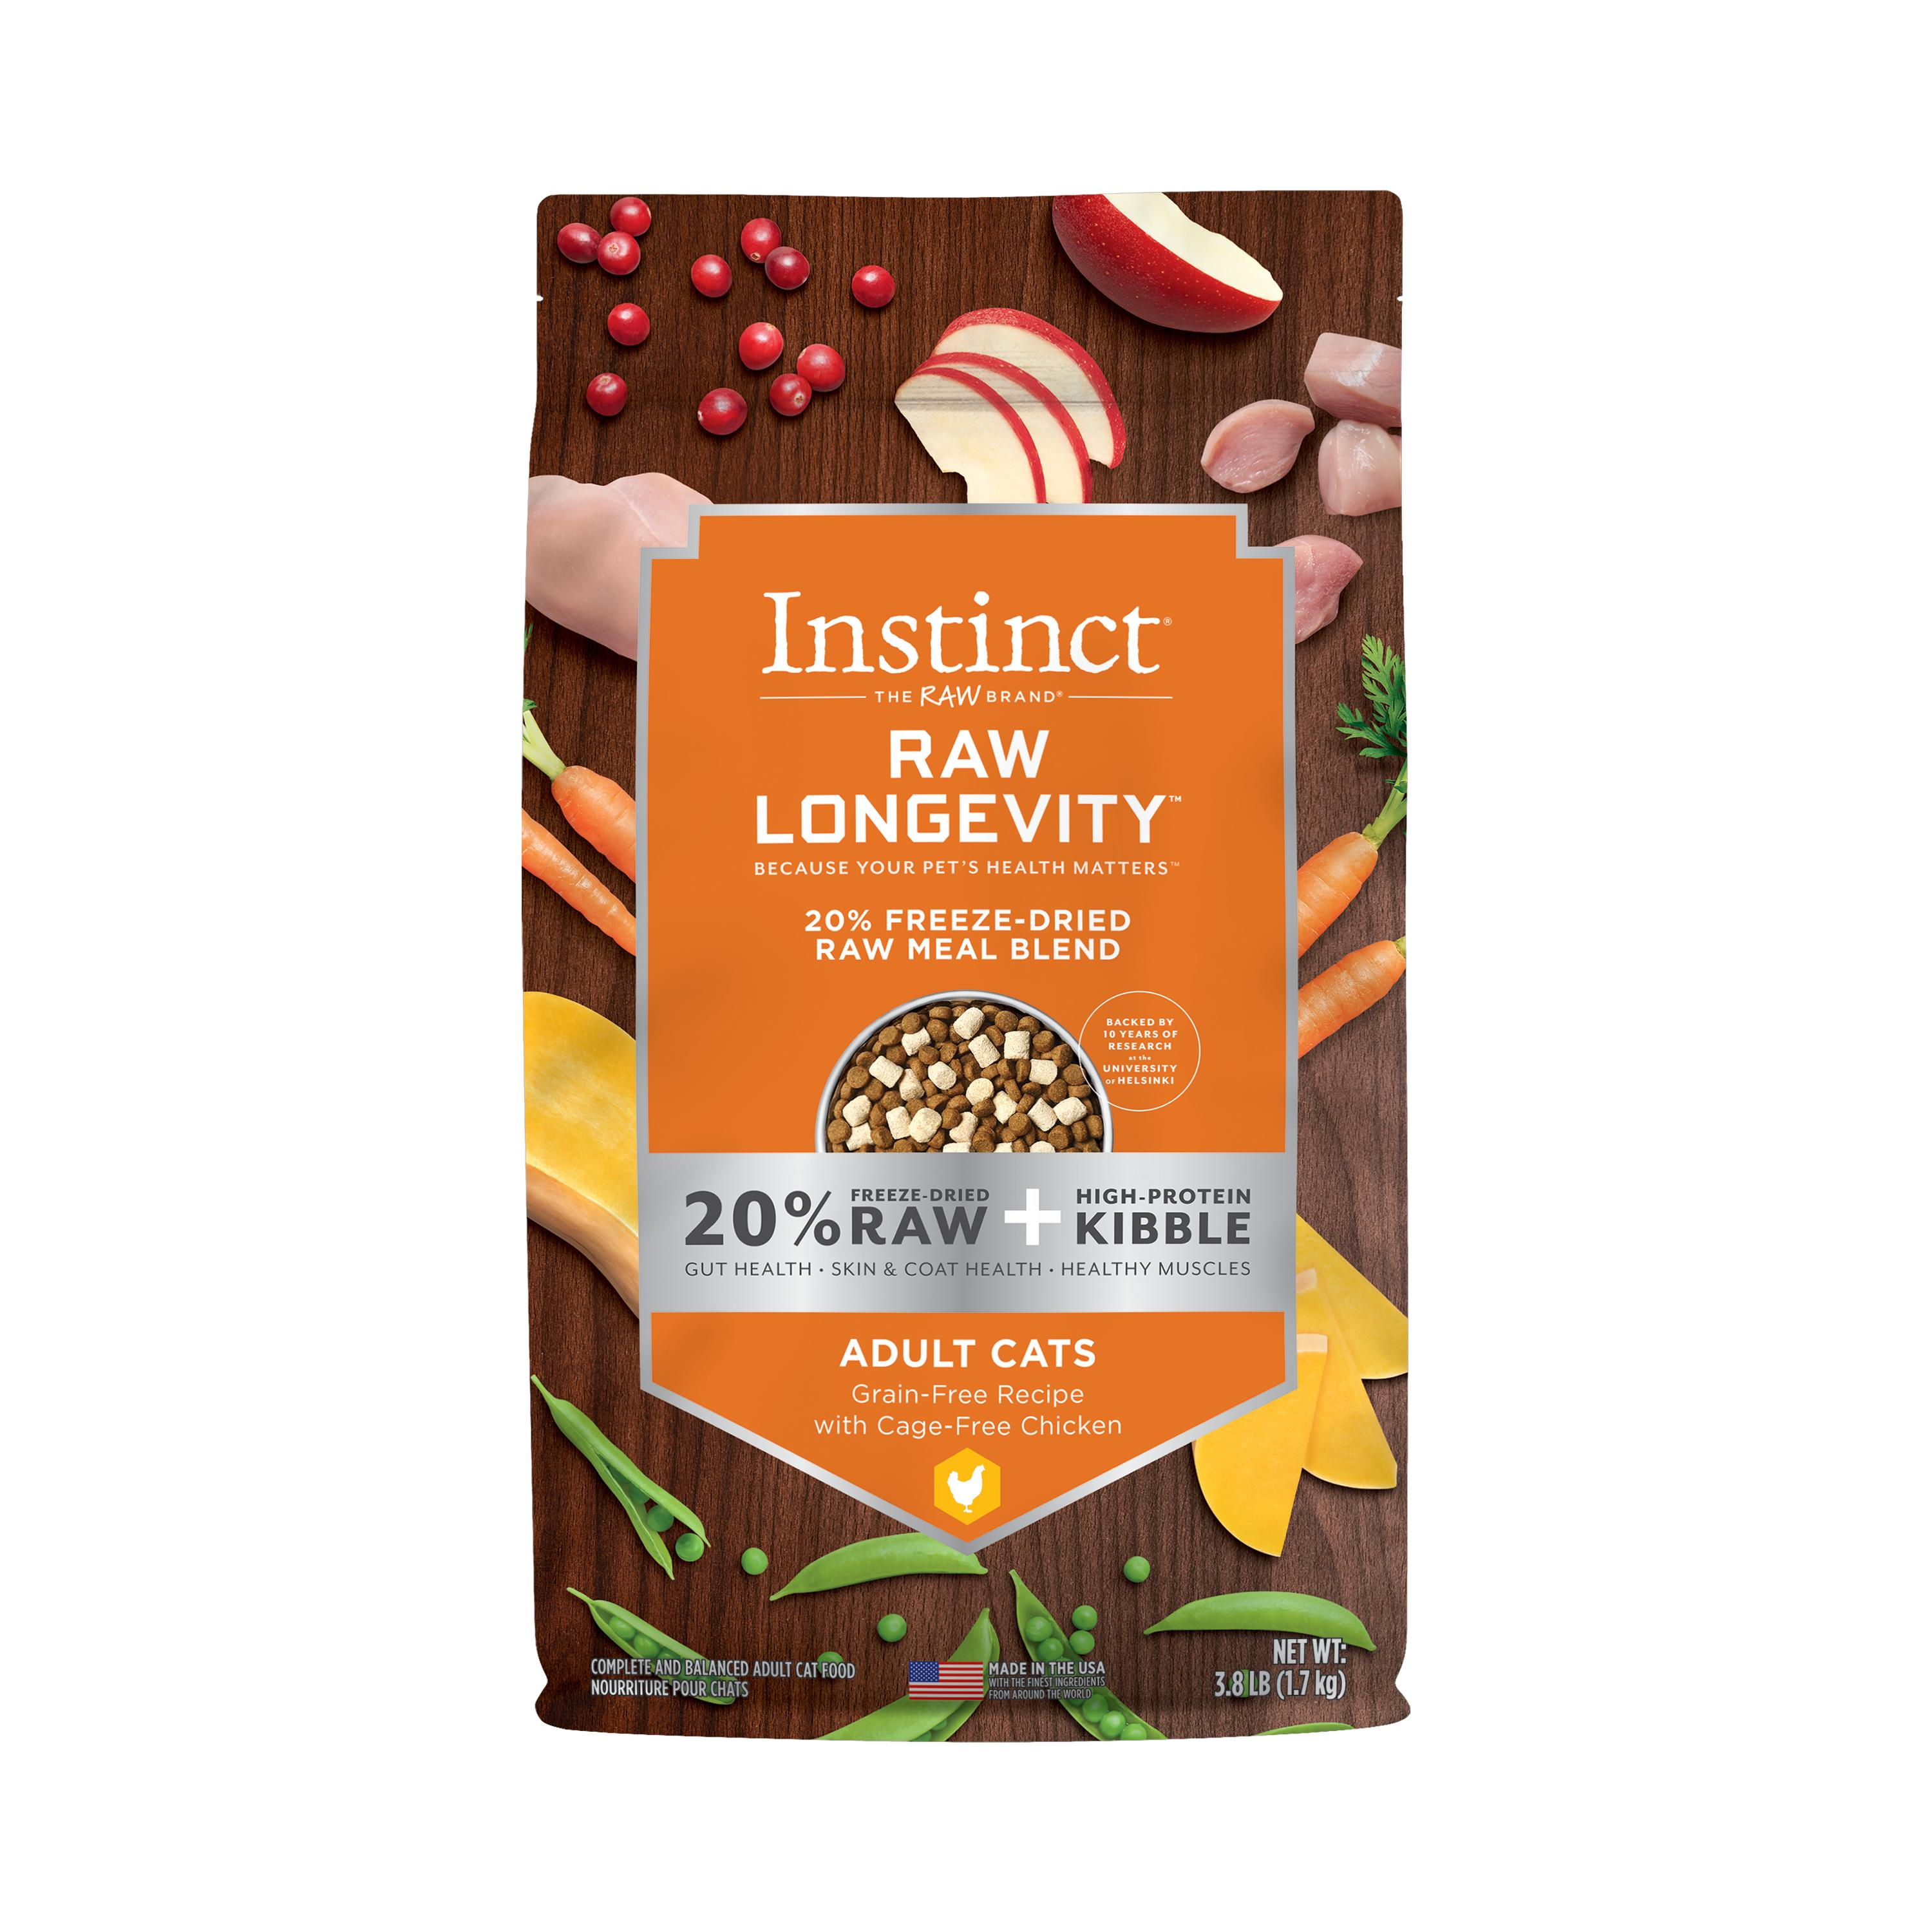 Instinct by Nature's Variety Raw Longevity Grain-Free Recipe with Cage-Free Chicken 20% Freeze-Dried Cat Food, 3.8-lb